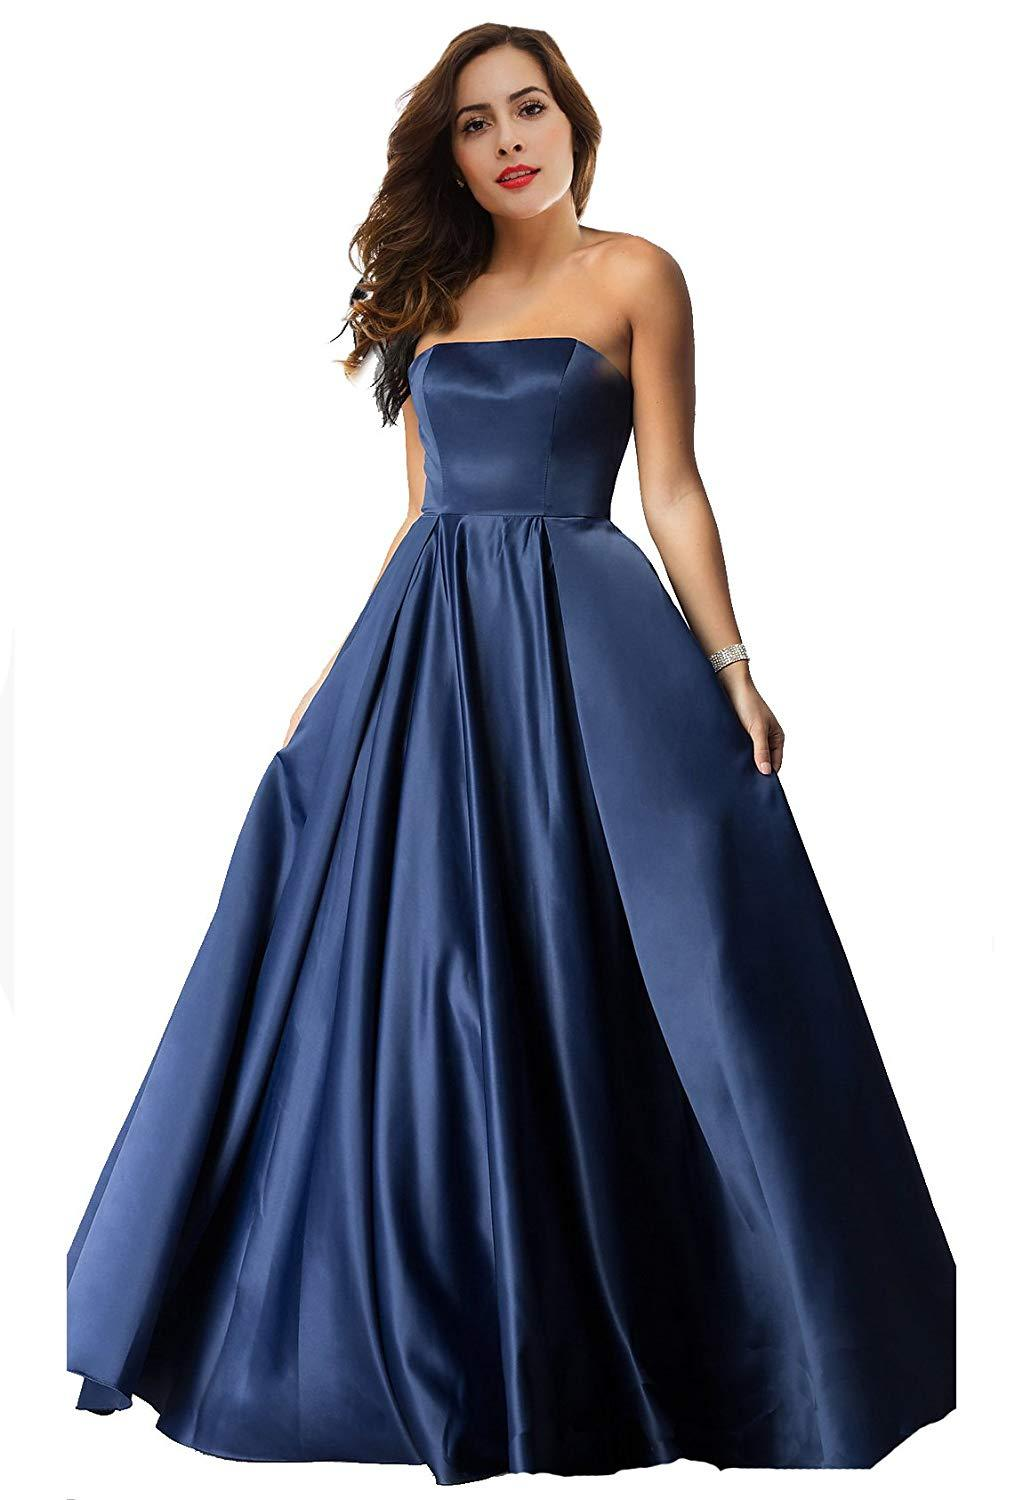 Primary image for Satin Prom Dresses 2019 Long Strapless Formal Bridesmaid Evening Ball Gowns 2019